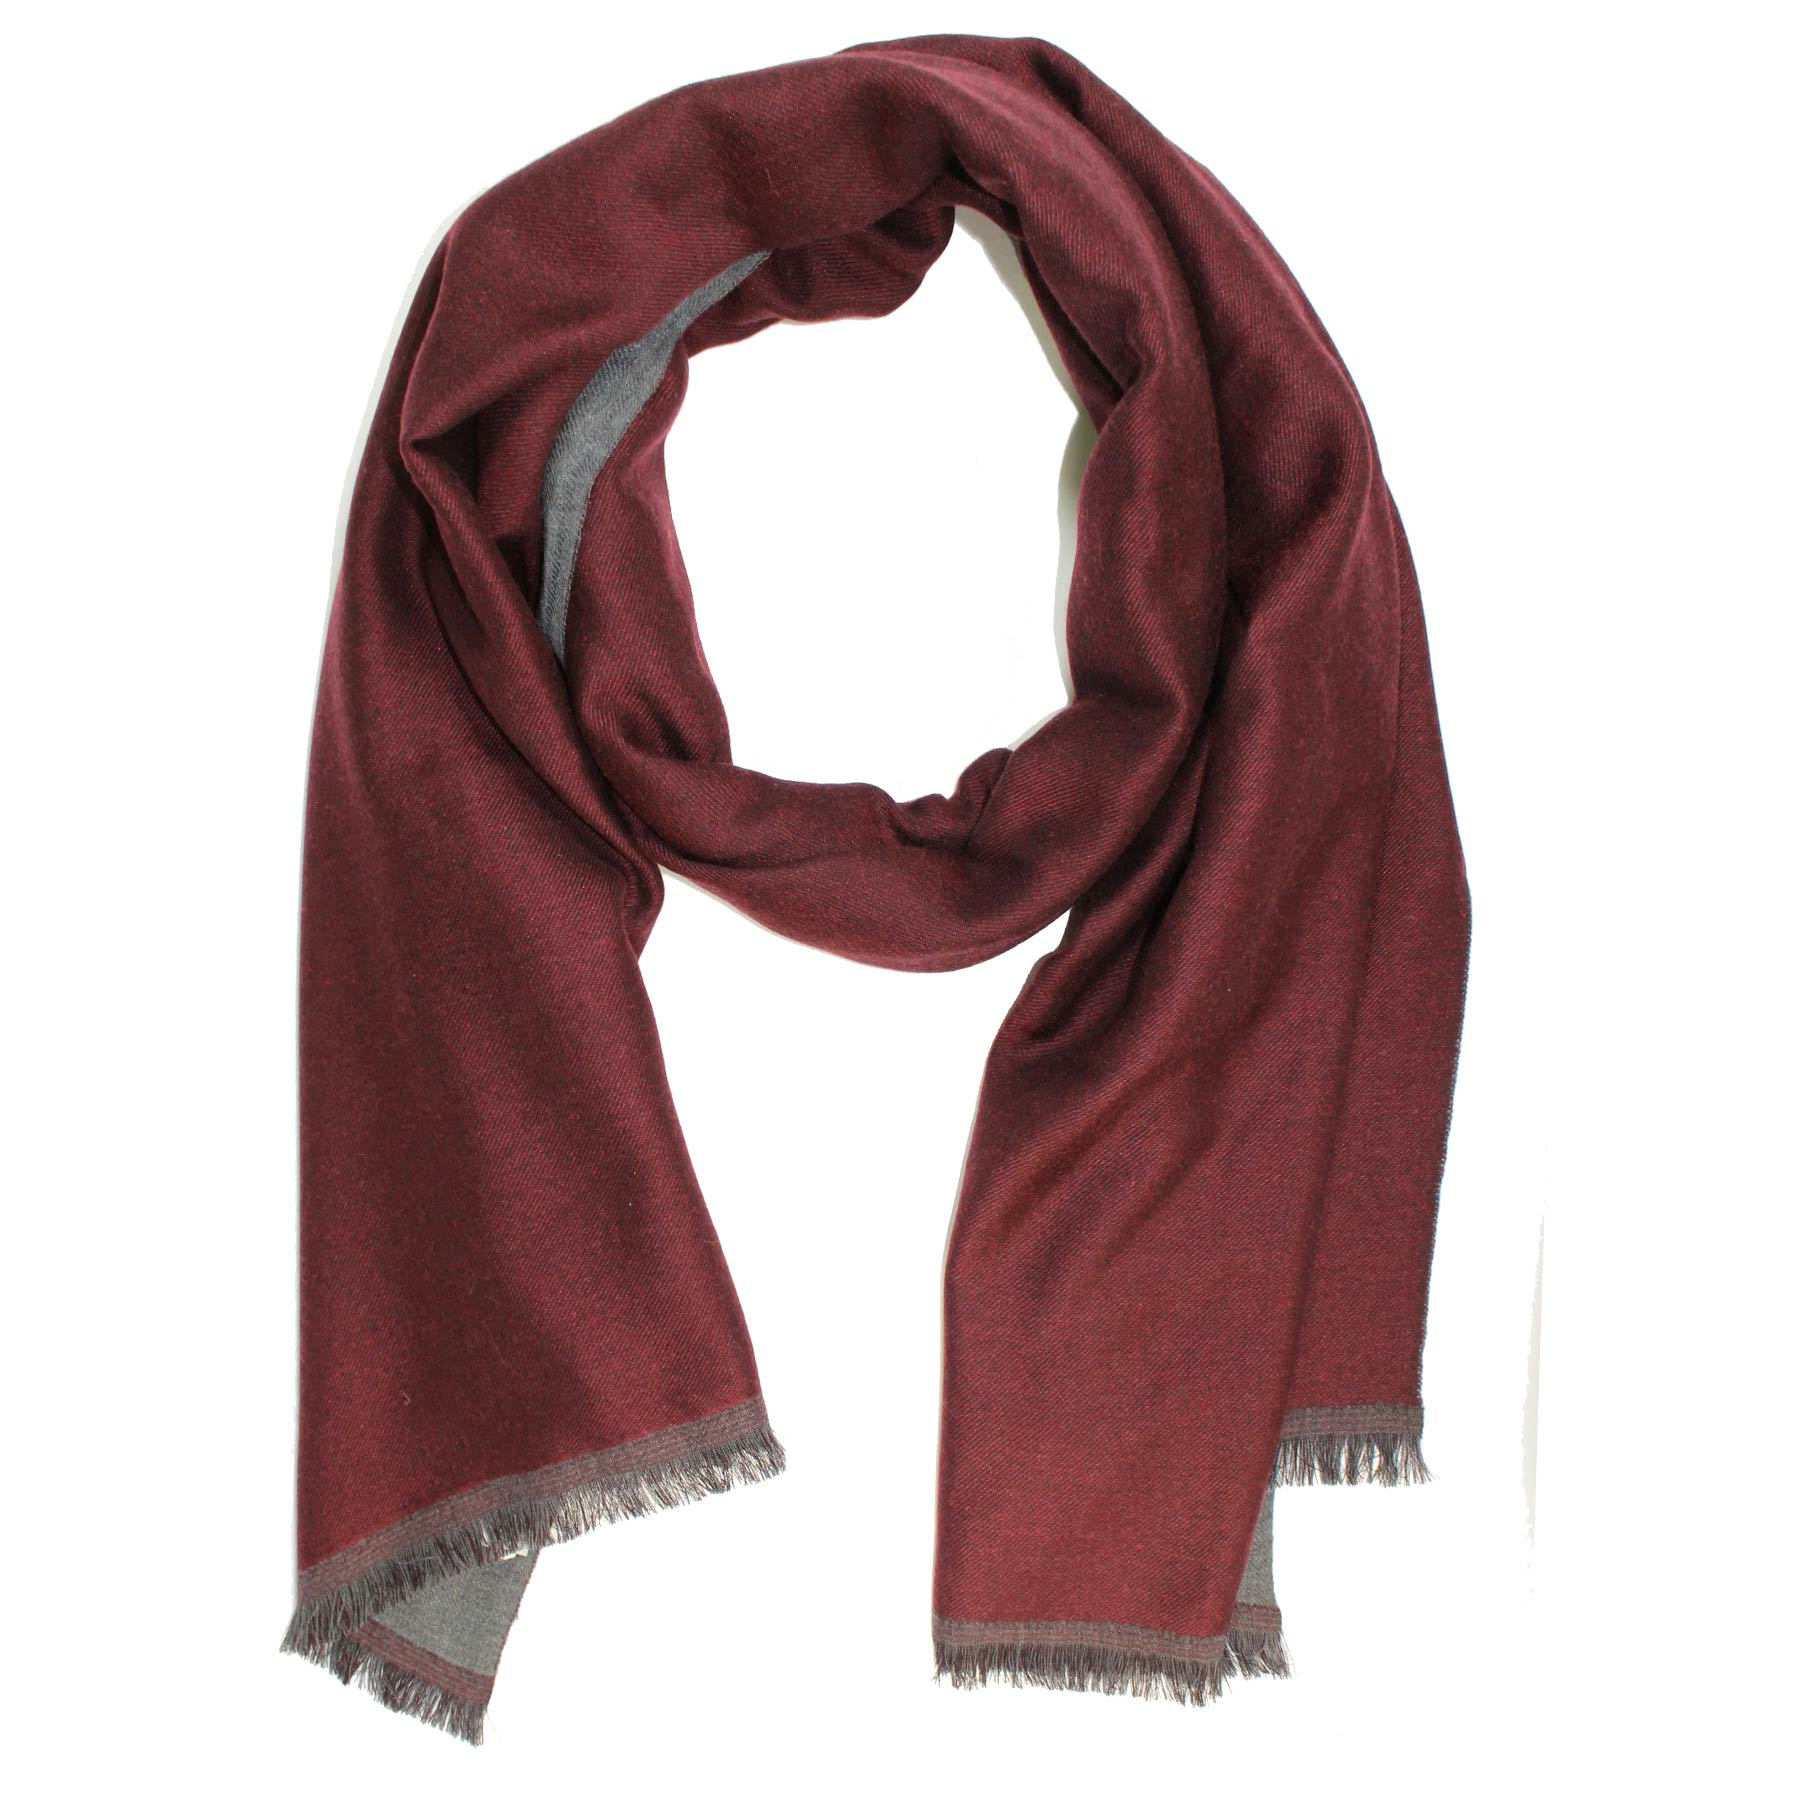 Agnona Scarf Charcoal Gray Burgundy Solid